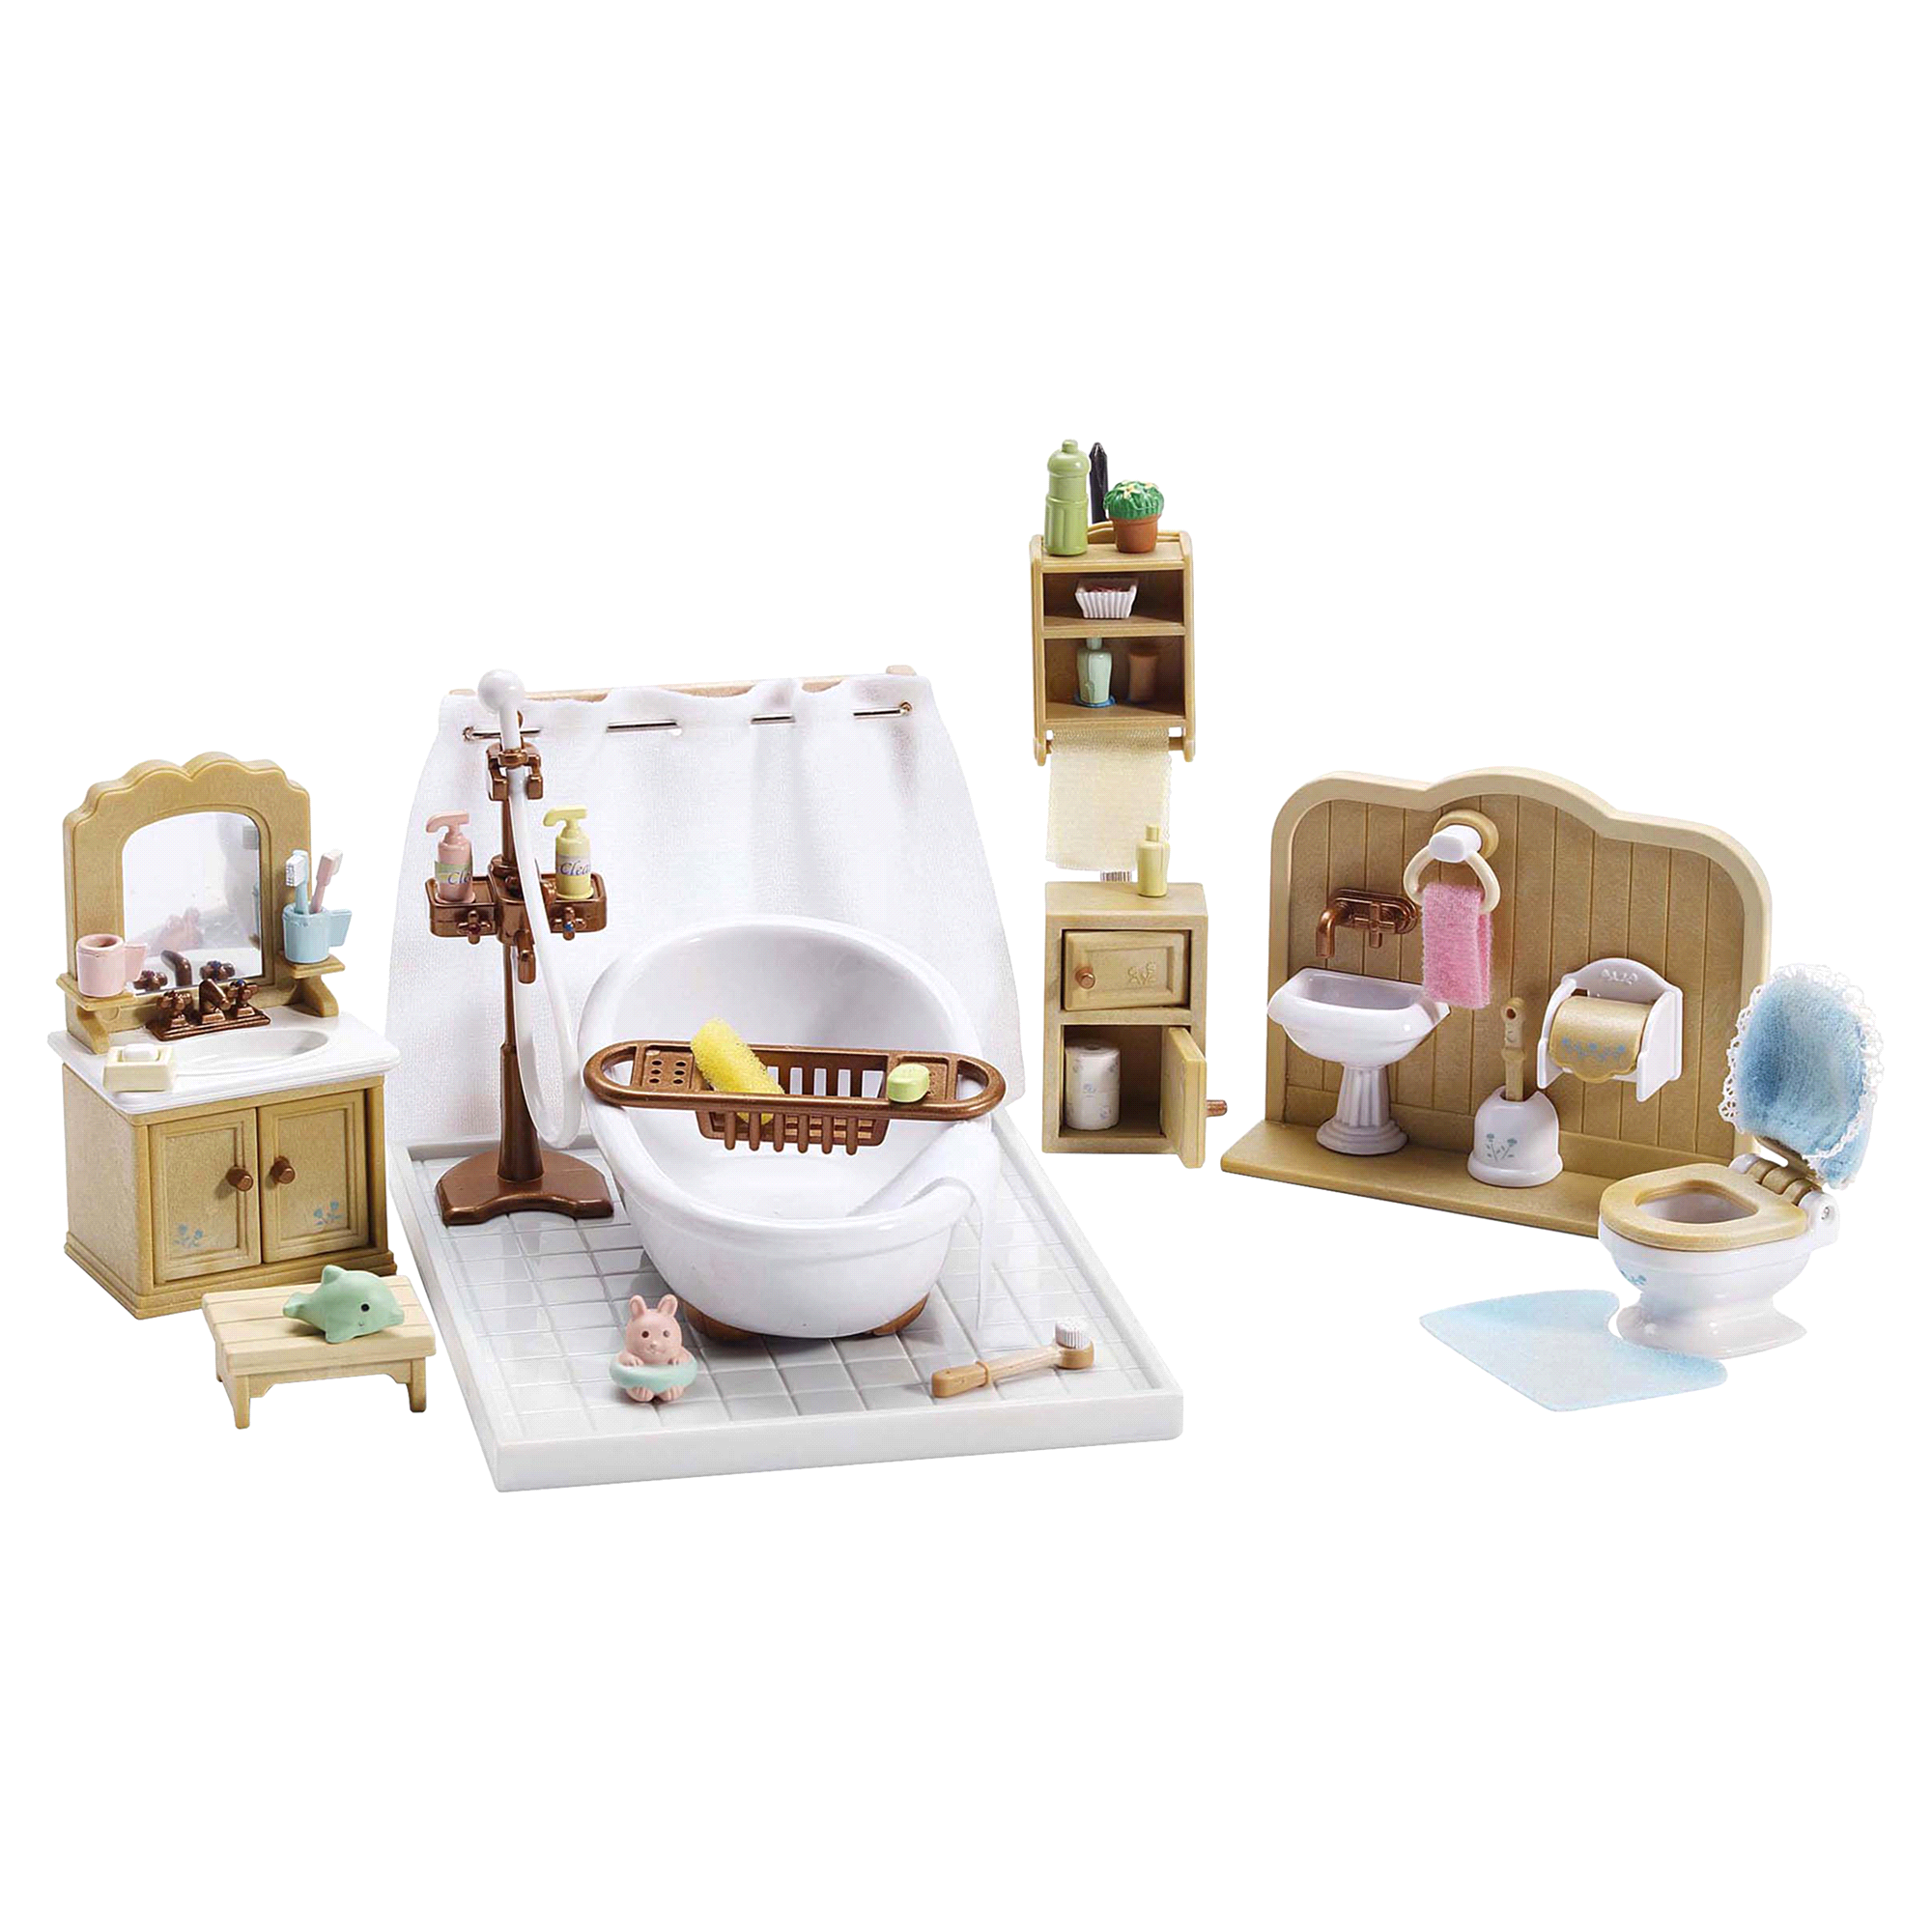 Calico Critters Deluxe Bathroom Set | Meijer.com